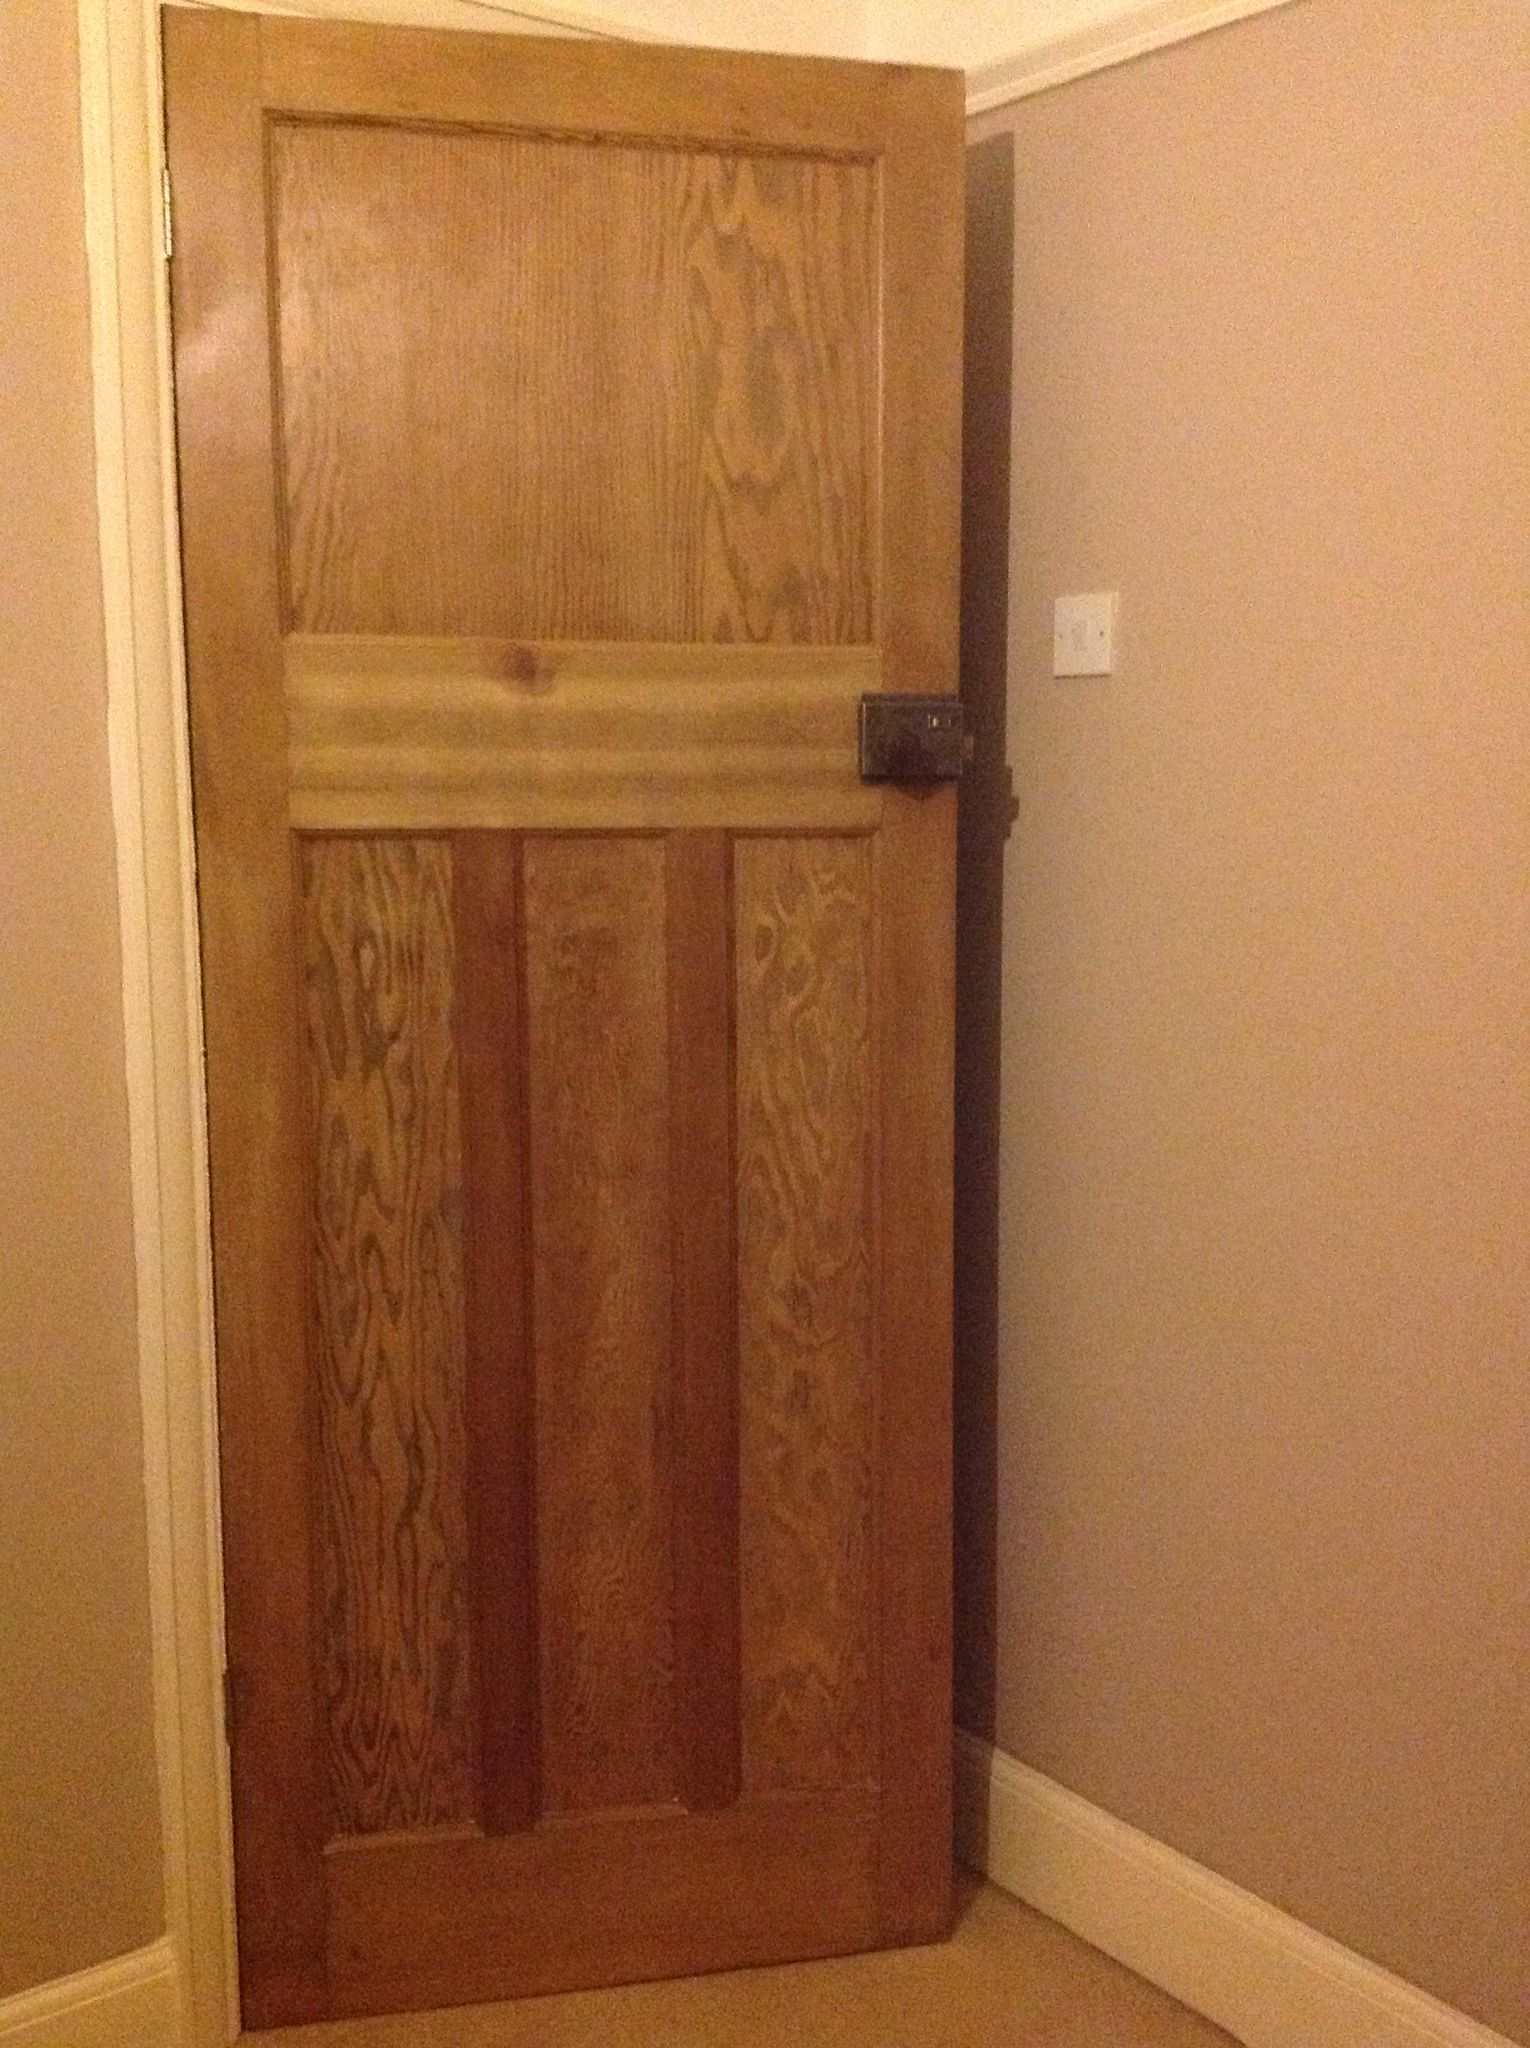 Charming 1 Over 3 Door Stripped Of White Paint, Sanded And Given A Satin Wood Varnish  Finish. Bakelite Door Knob Cleaned Using Wax And Door Furniture Cleaned And  ...